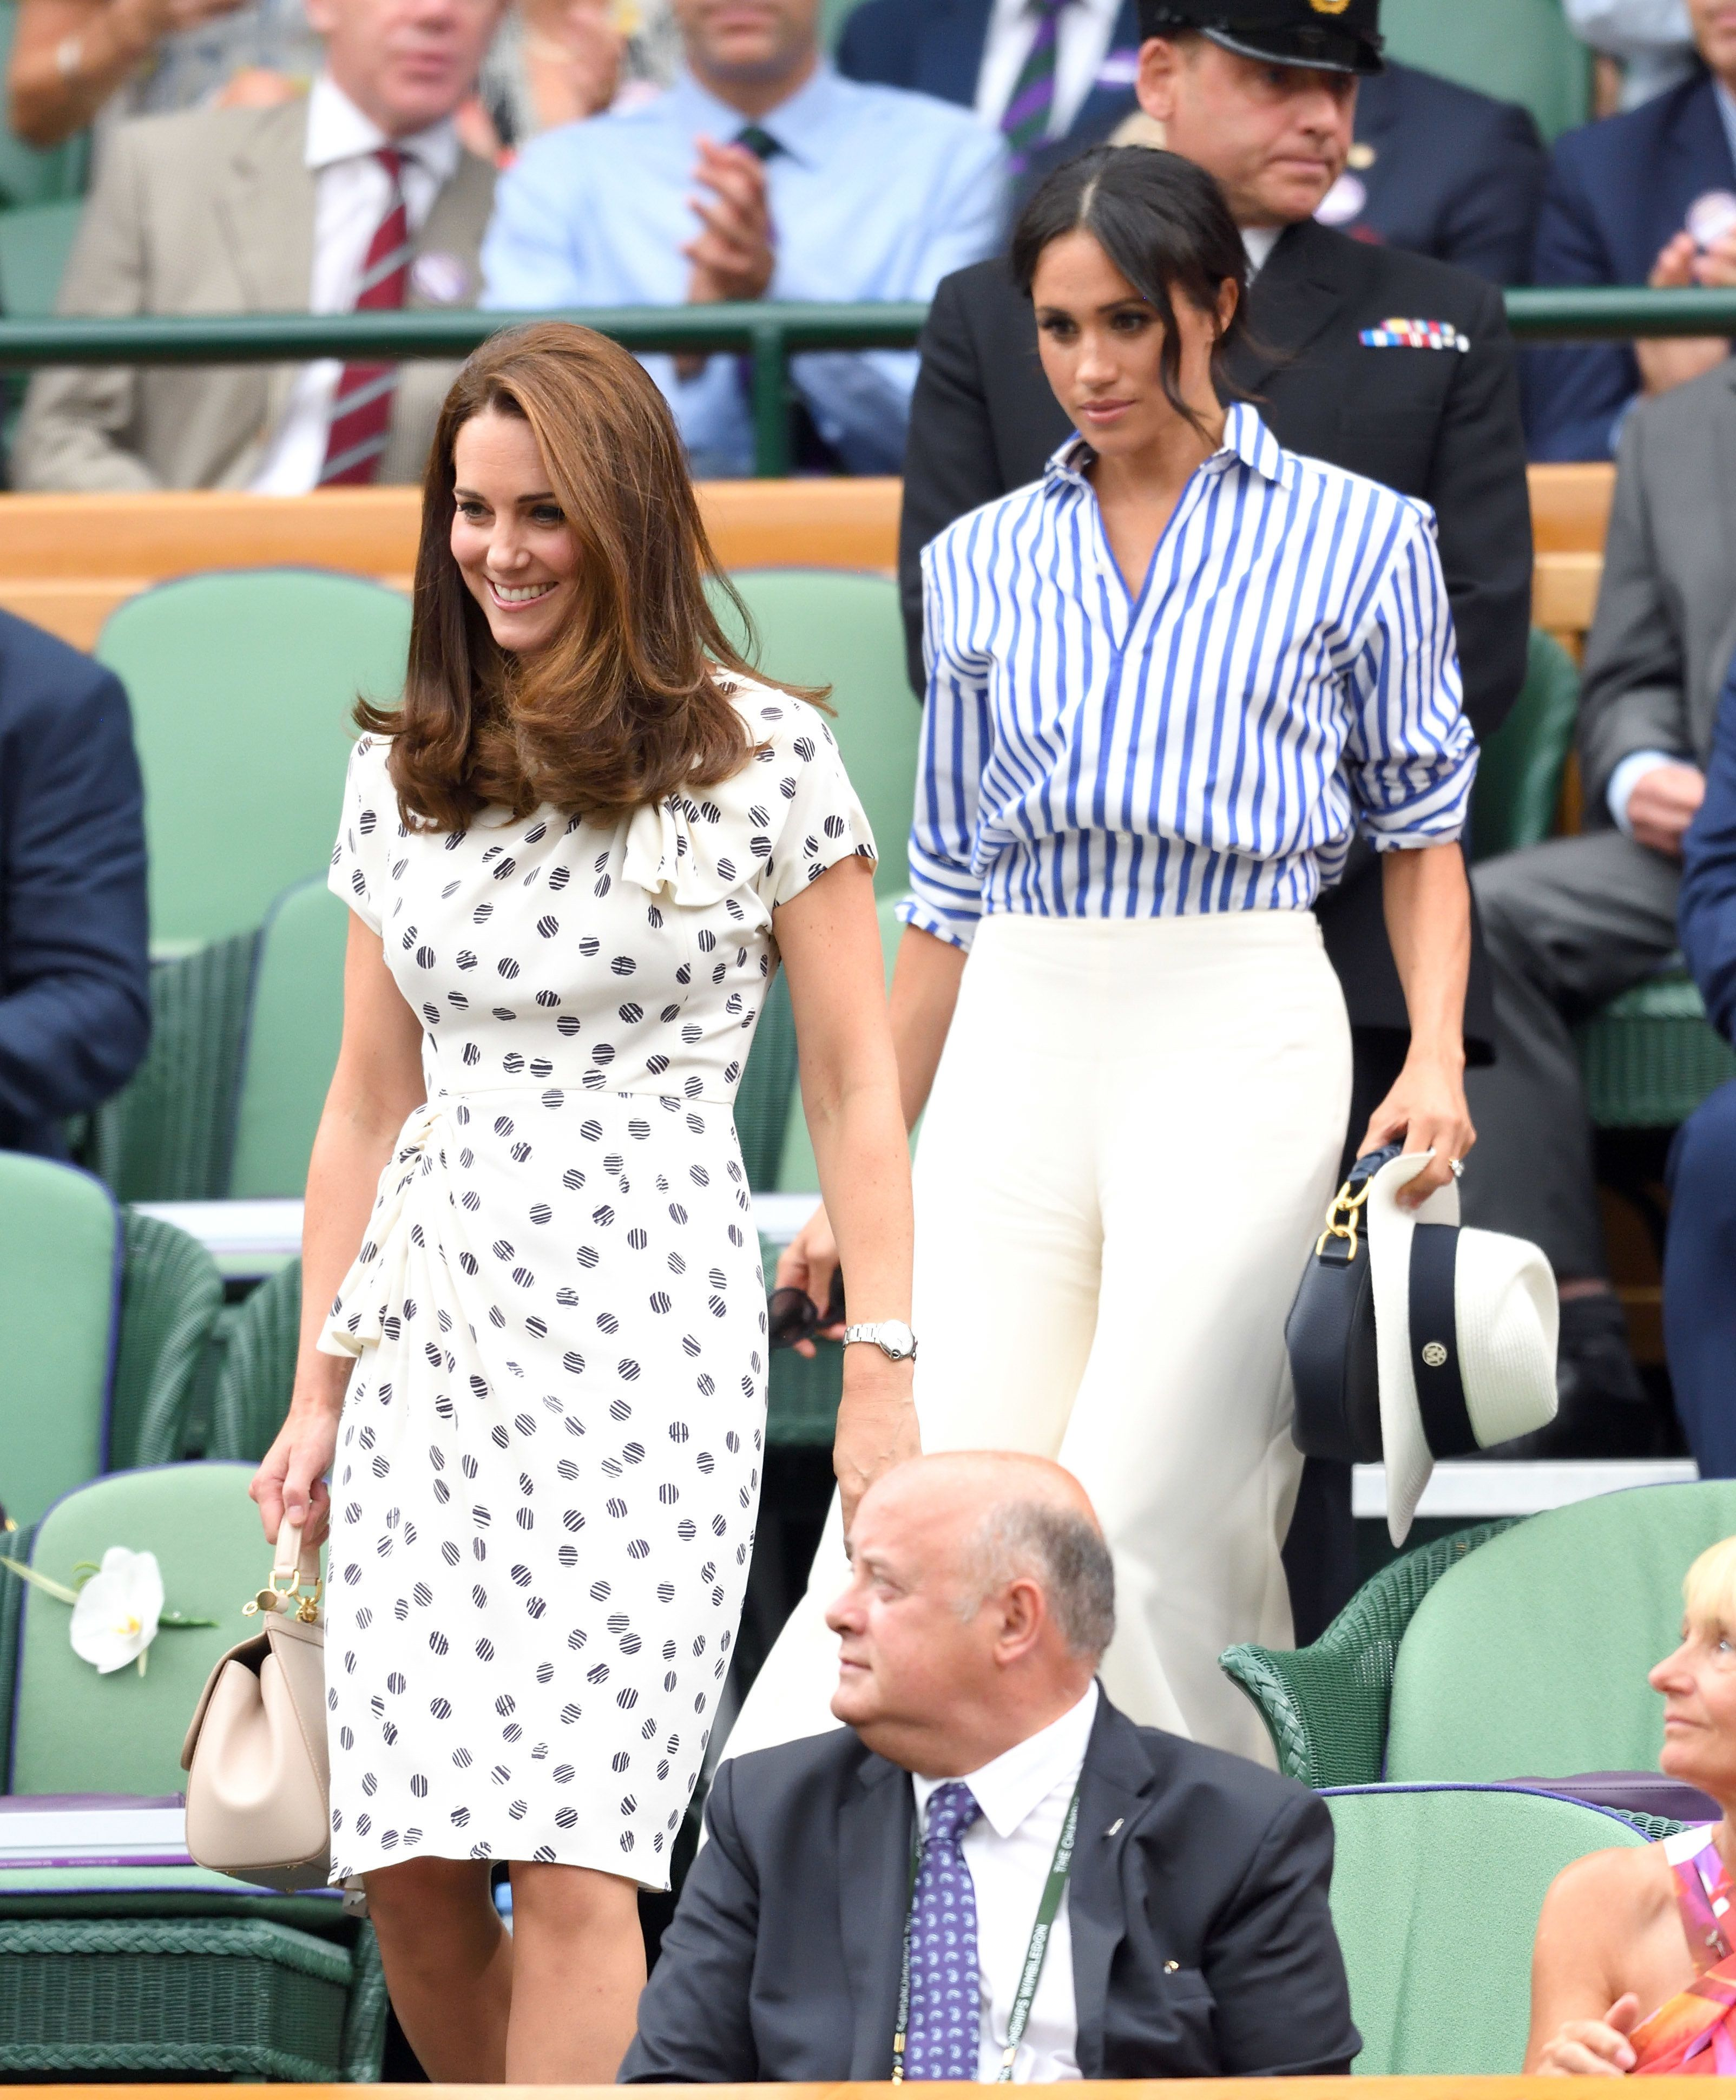 LONDON, ENGLAND - JULY 14:  Catherine, Duchess of Cambridge and Meghan, Duchess of Sussex attend day twelve of the Wimbledon Tennis Championships at the All England Lawn Tennis and Croquet Club on July 14, 2018 in London, England.  (Photo by Karwai Tang/WireImage )